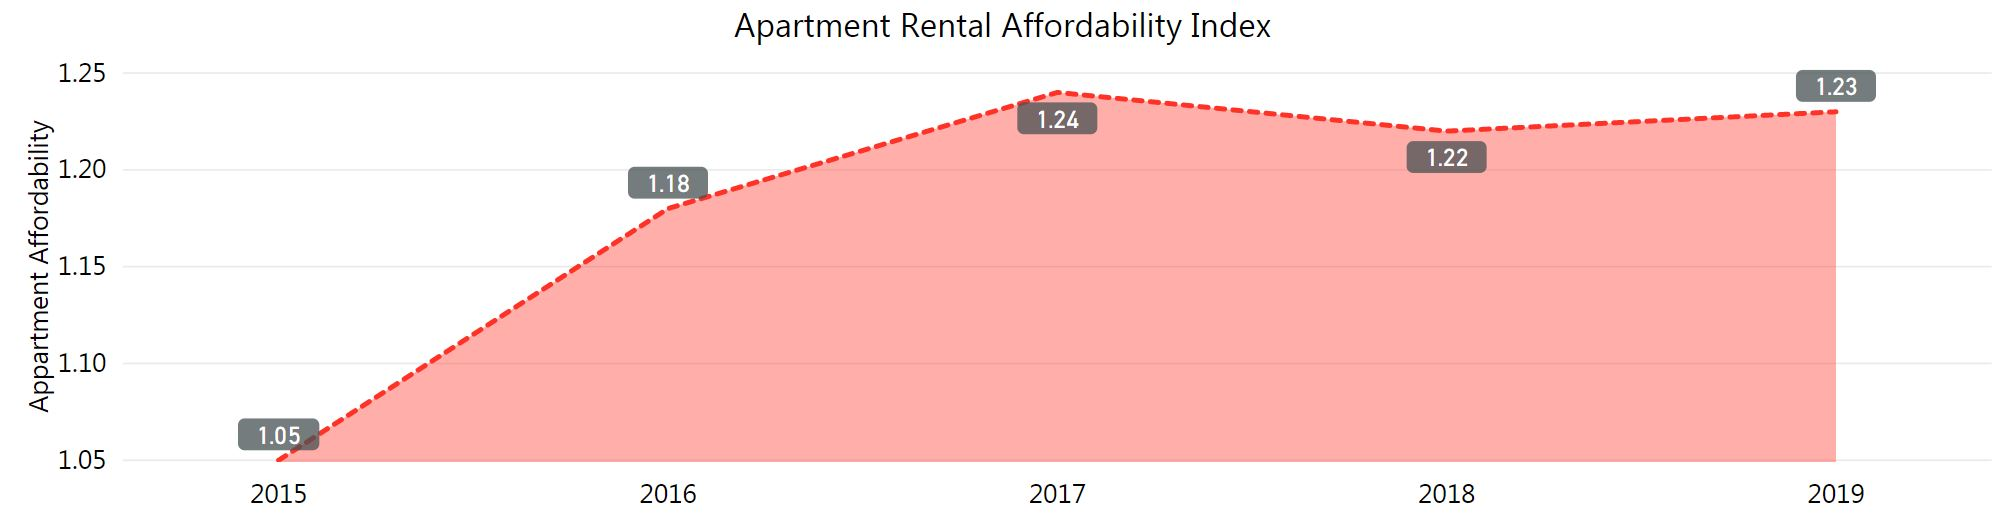 Apartment affordability in 2019 at 1.23